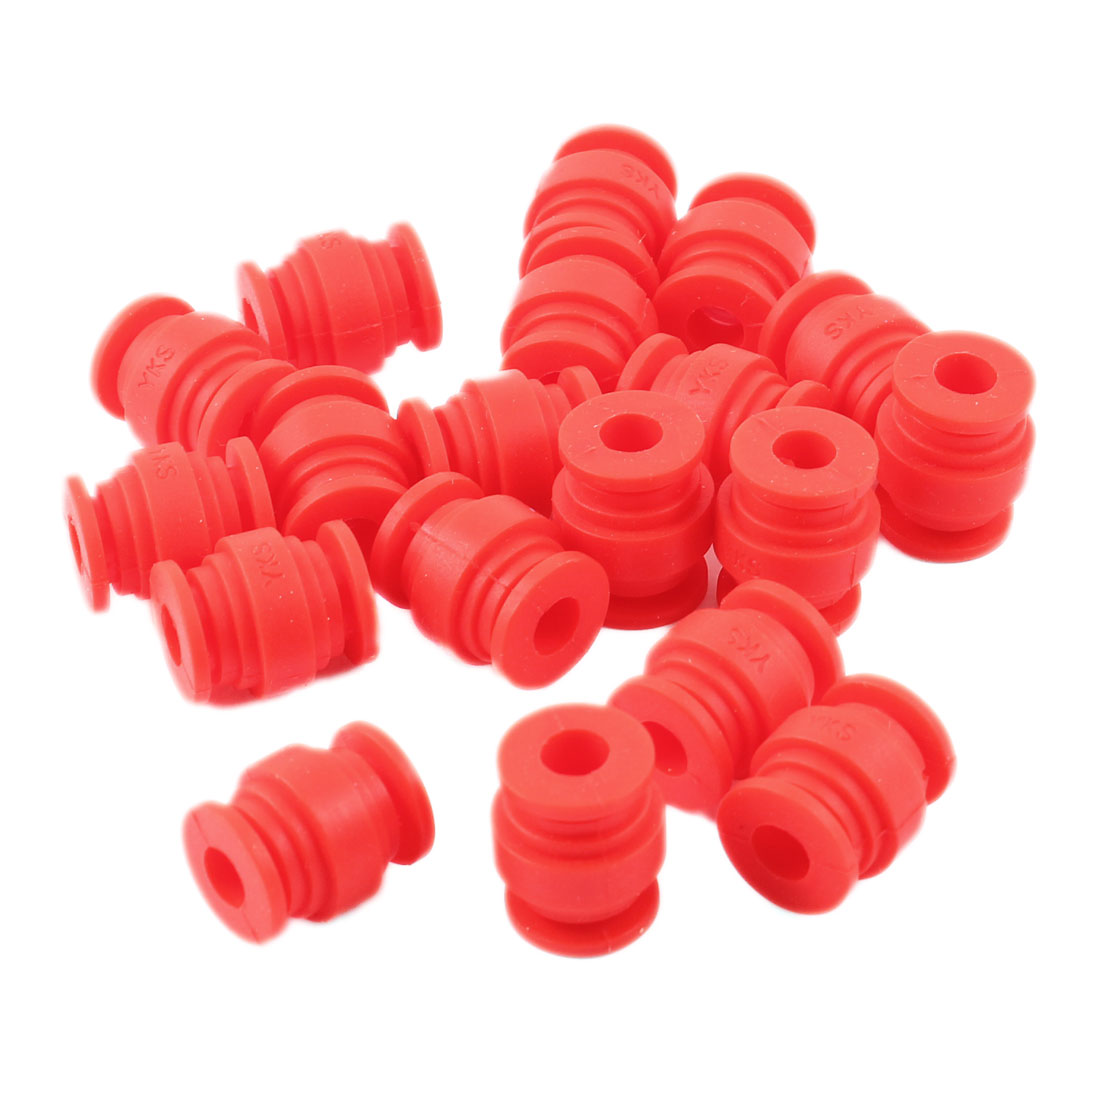 Radio-controlled Aircraft Red Rubber Shock Absorption Damping Ball 20 Pcs